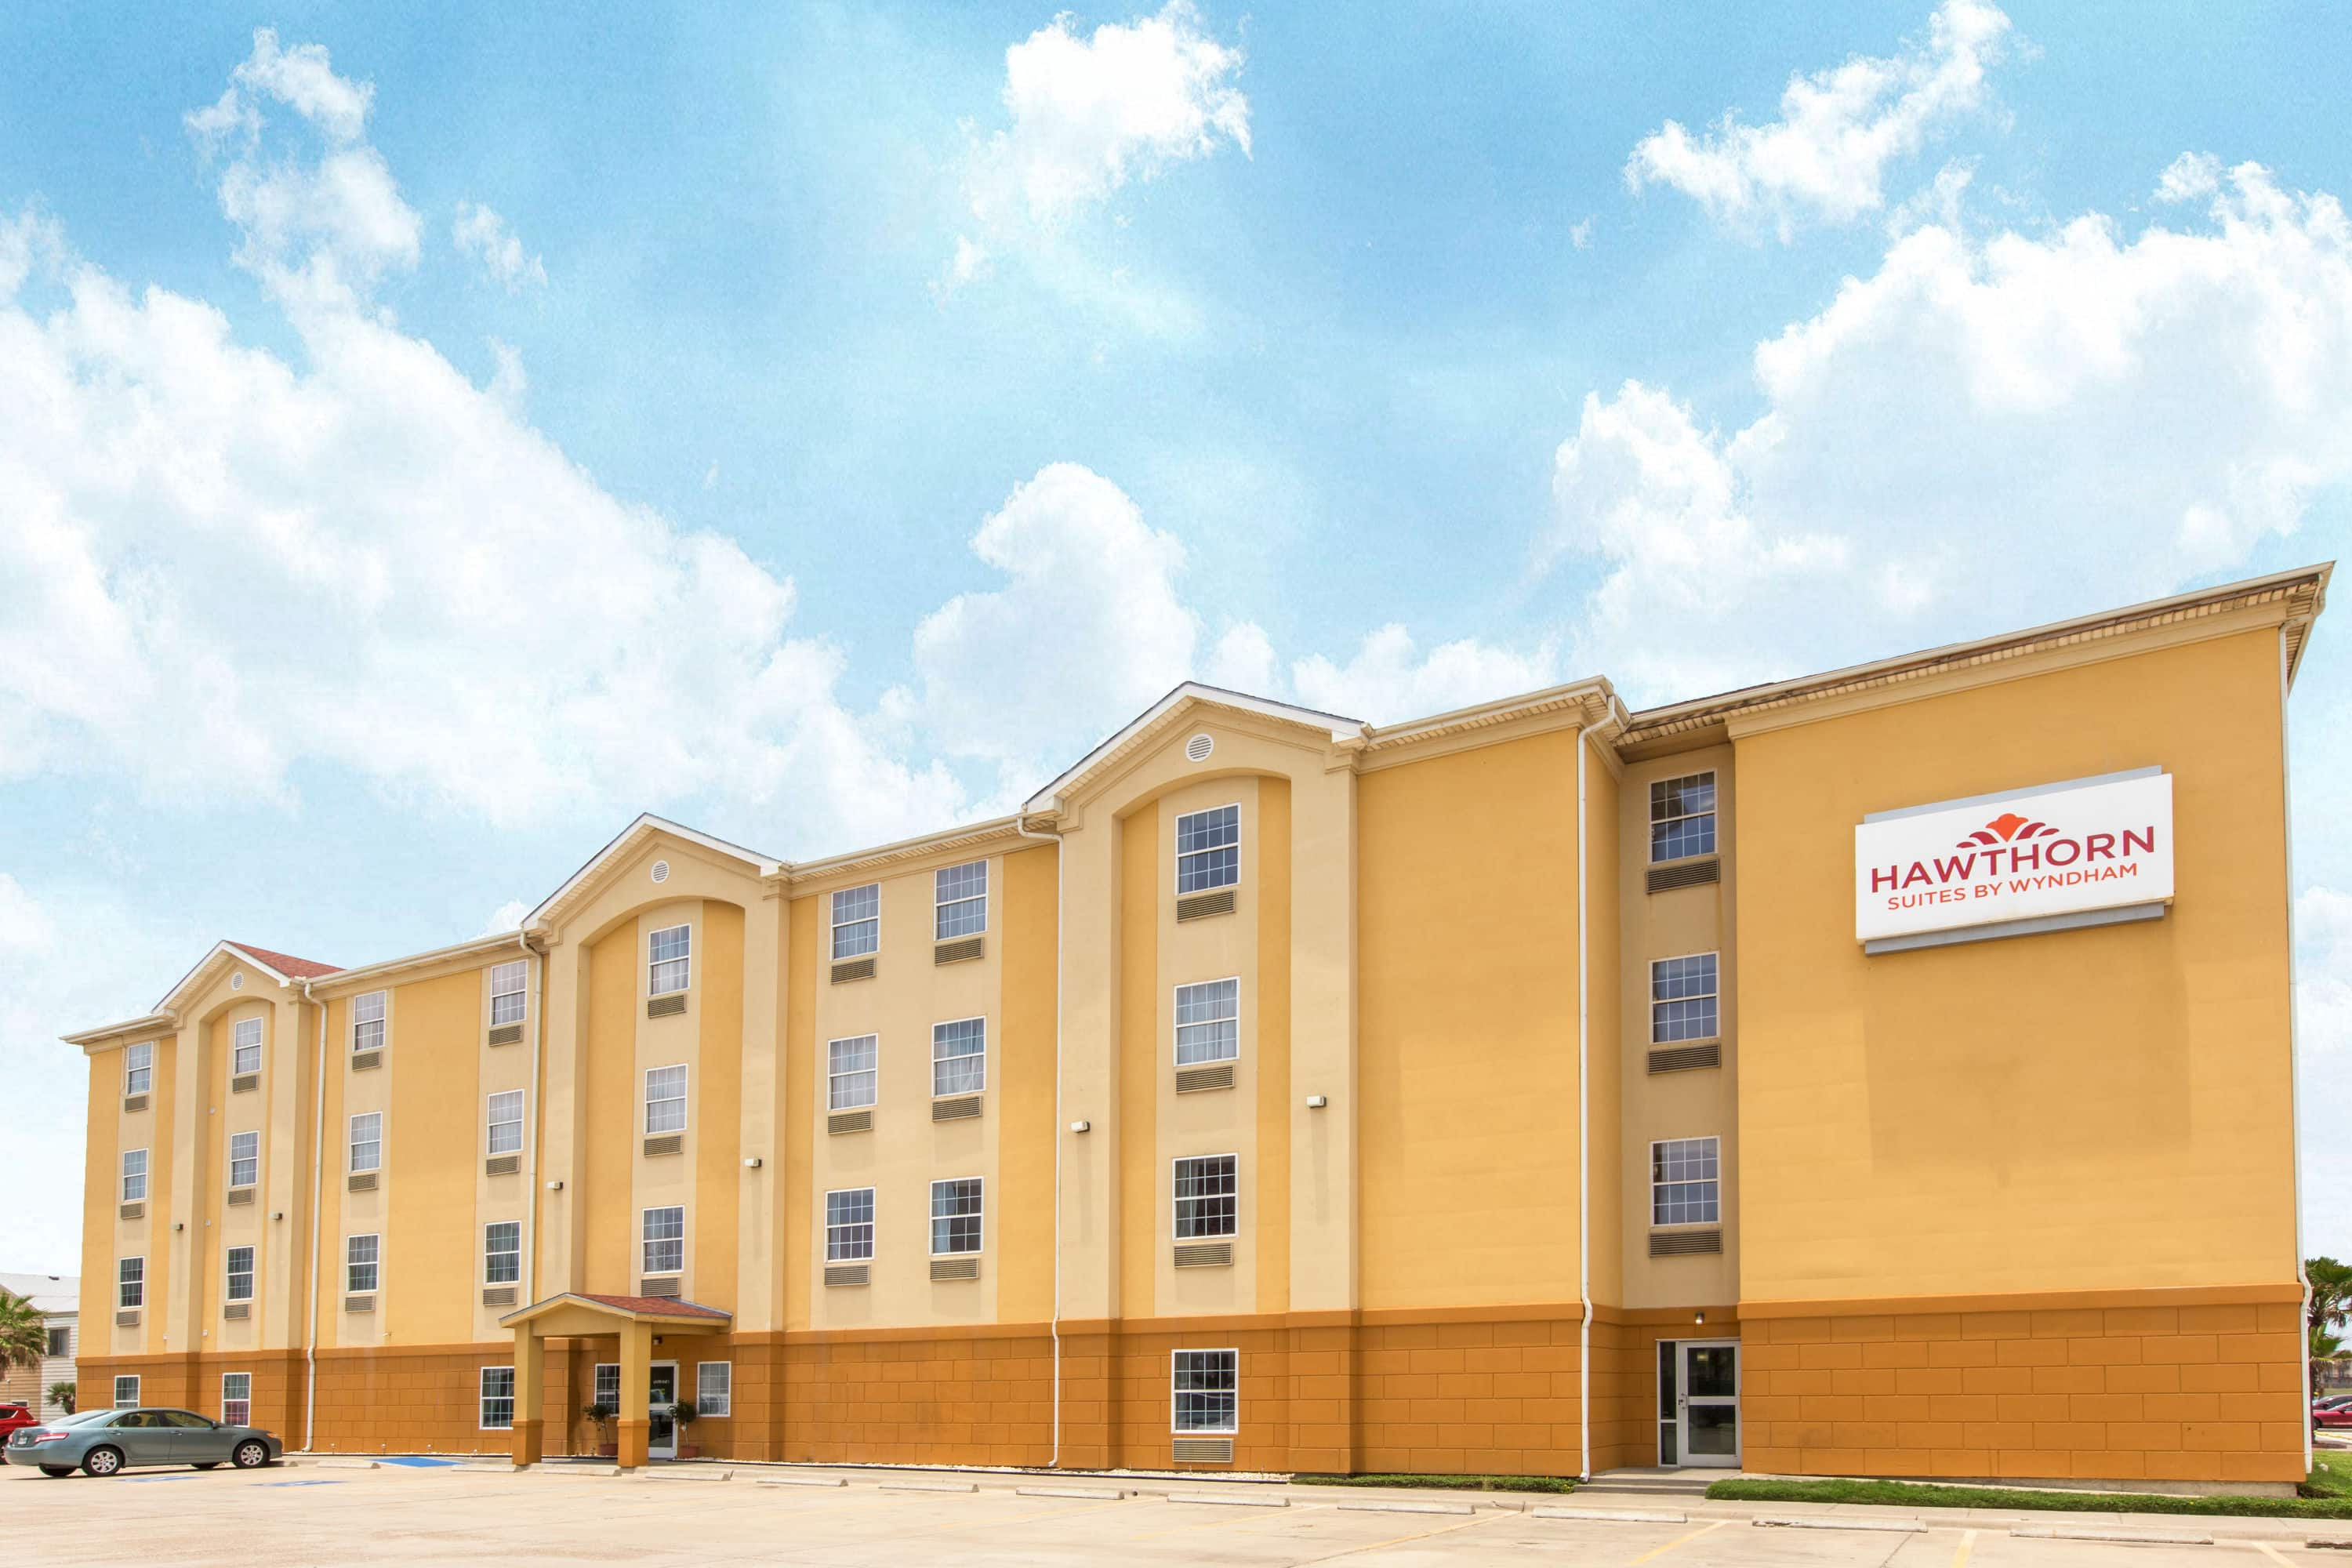 Hawthorn Suites By Wyndham Corpus Christi Padre Is Hotels Tx 78418